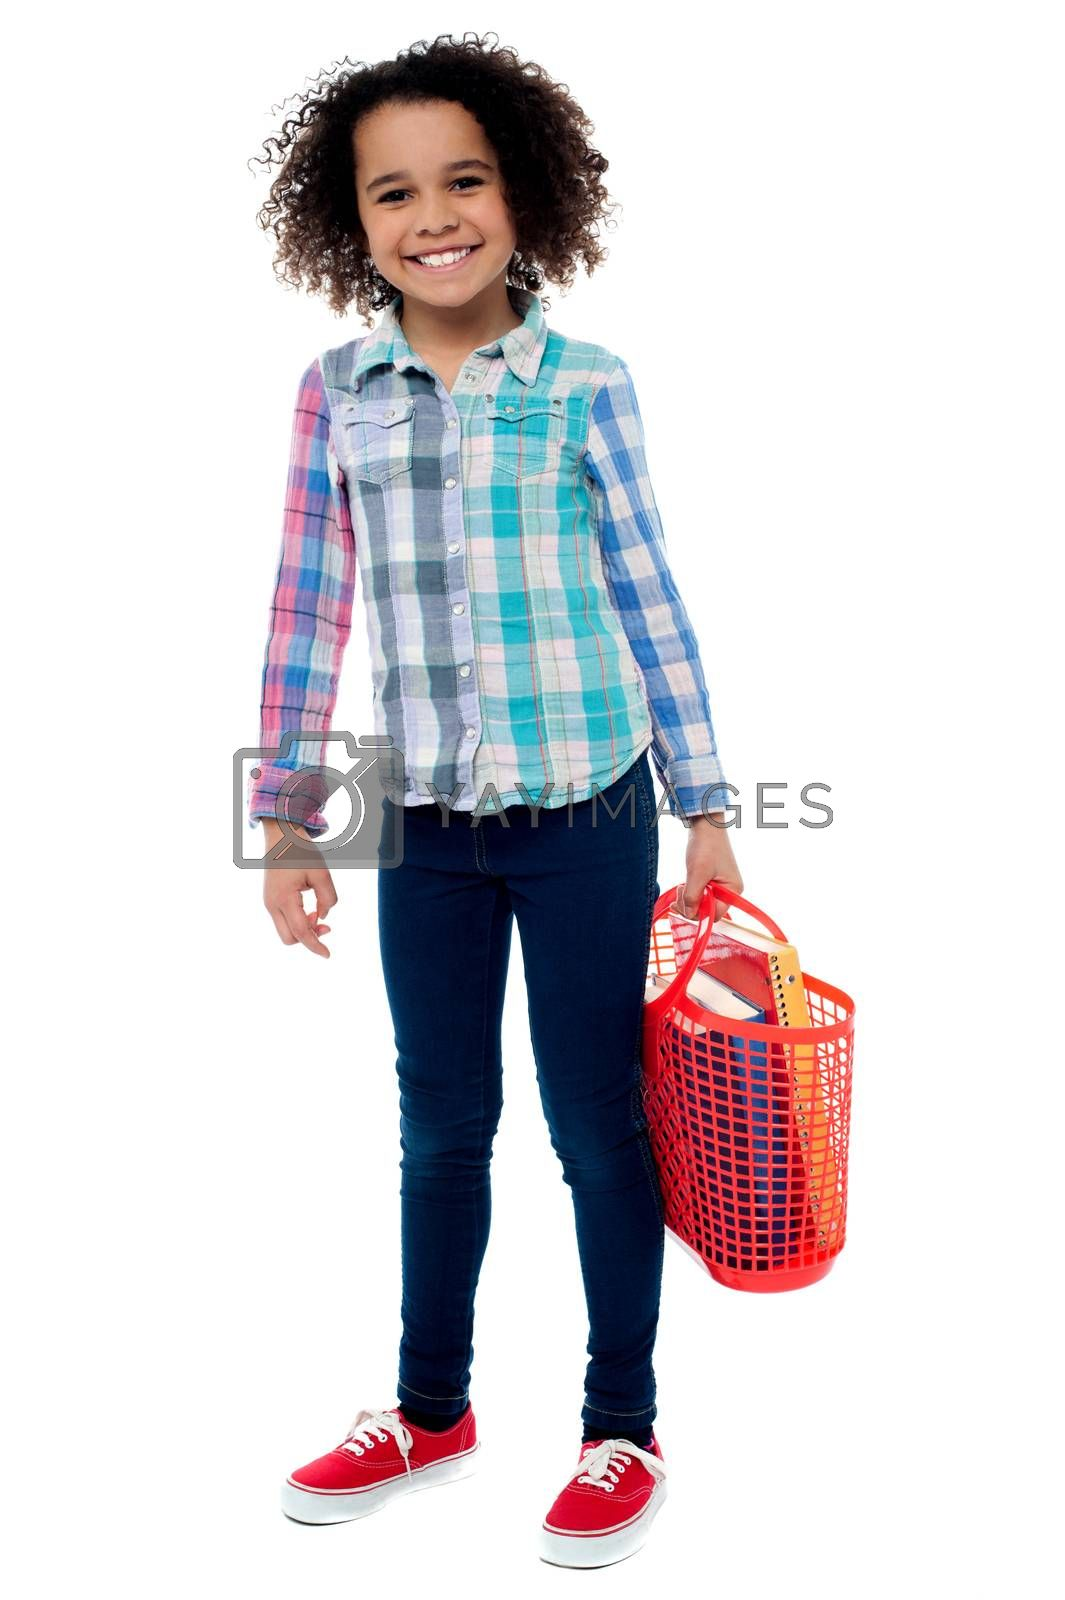 Image of a happy girl with basket over white